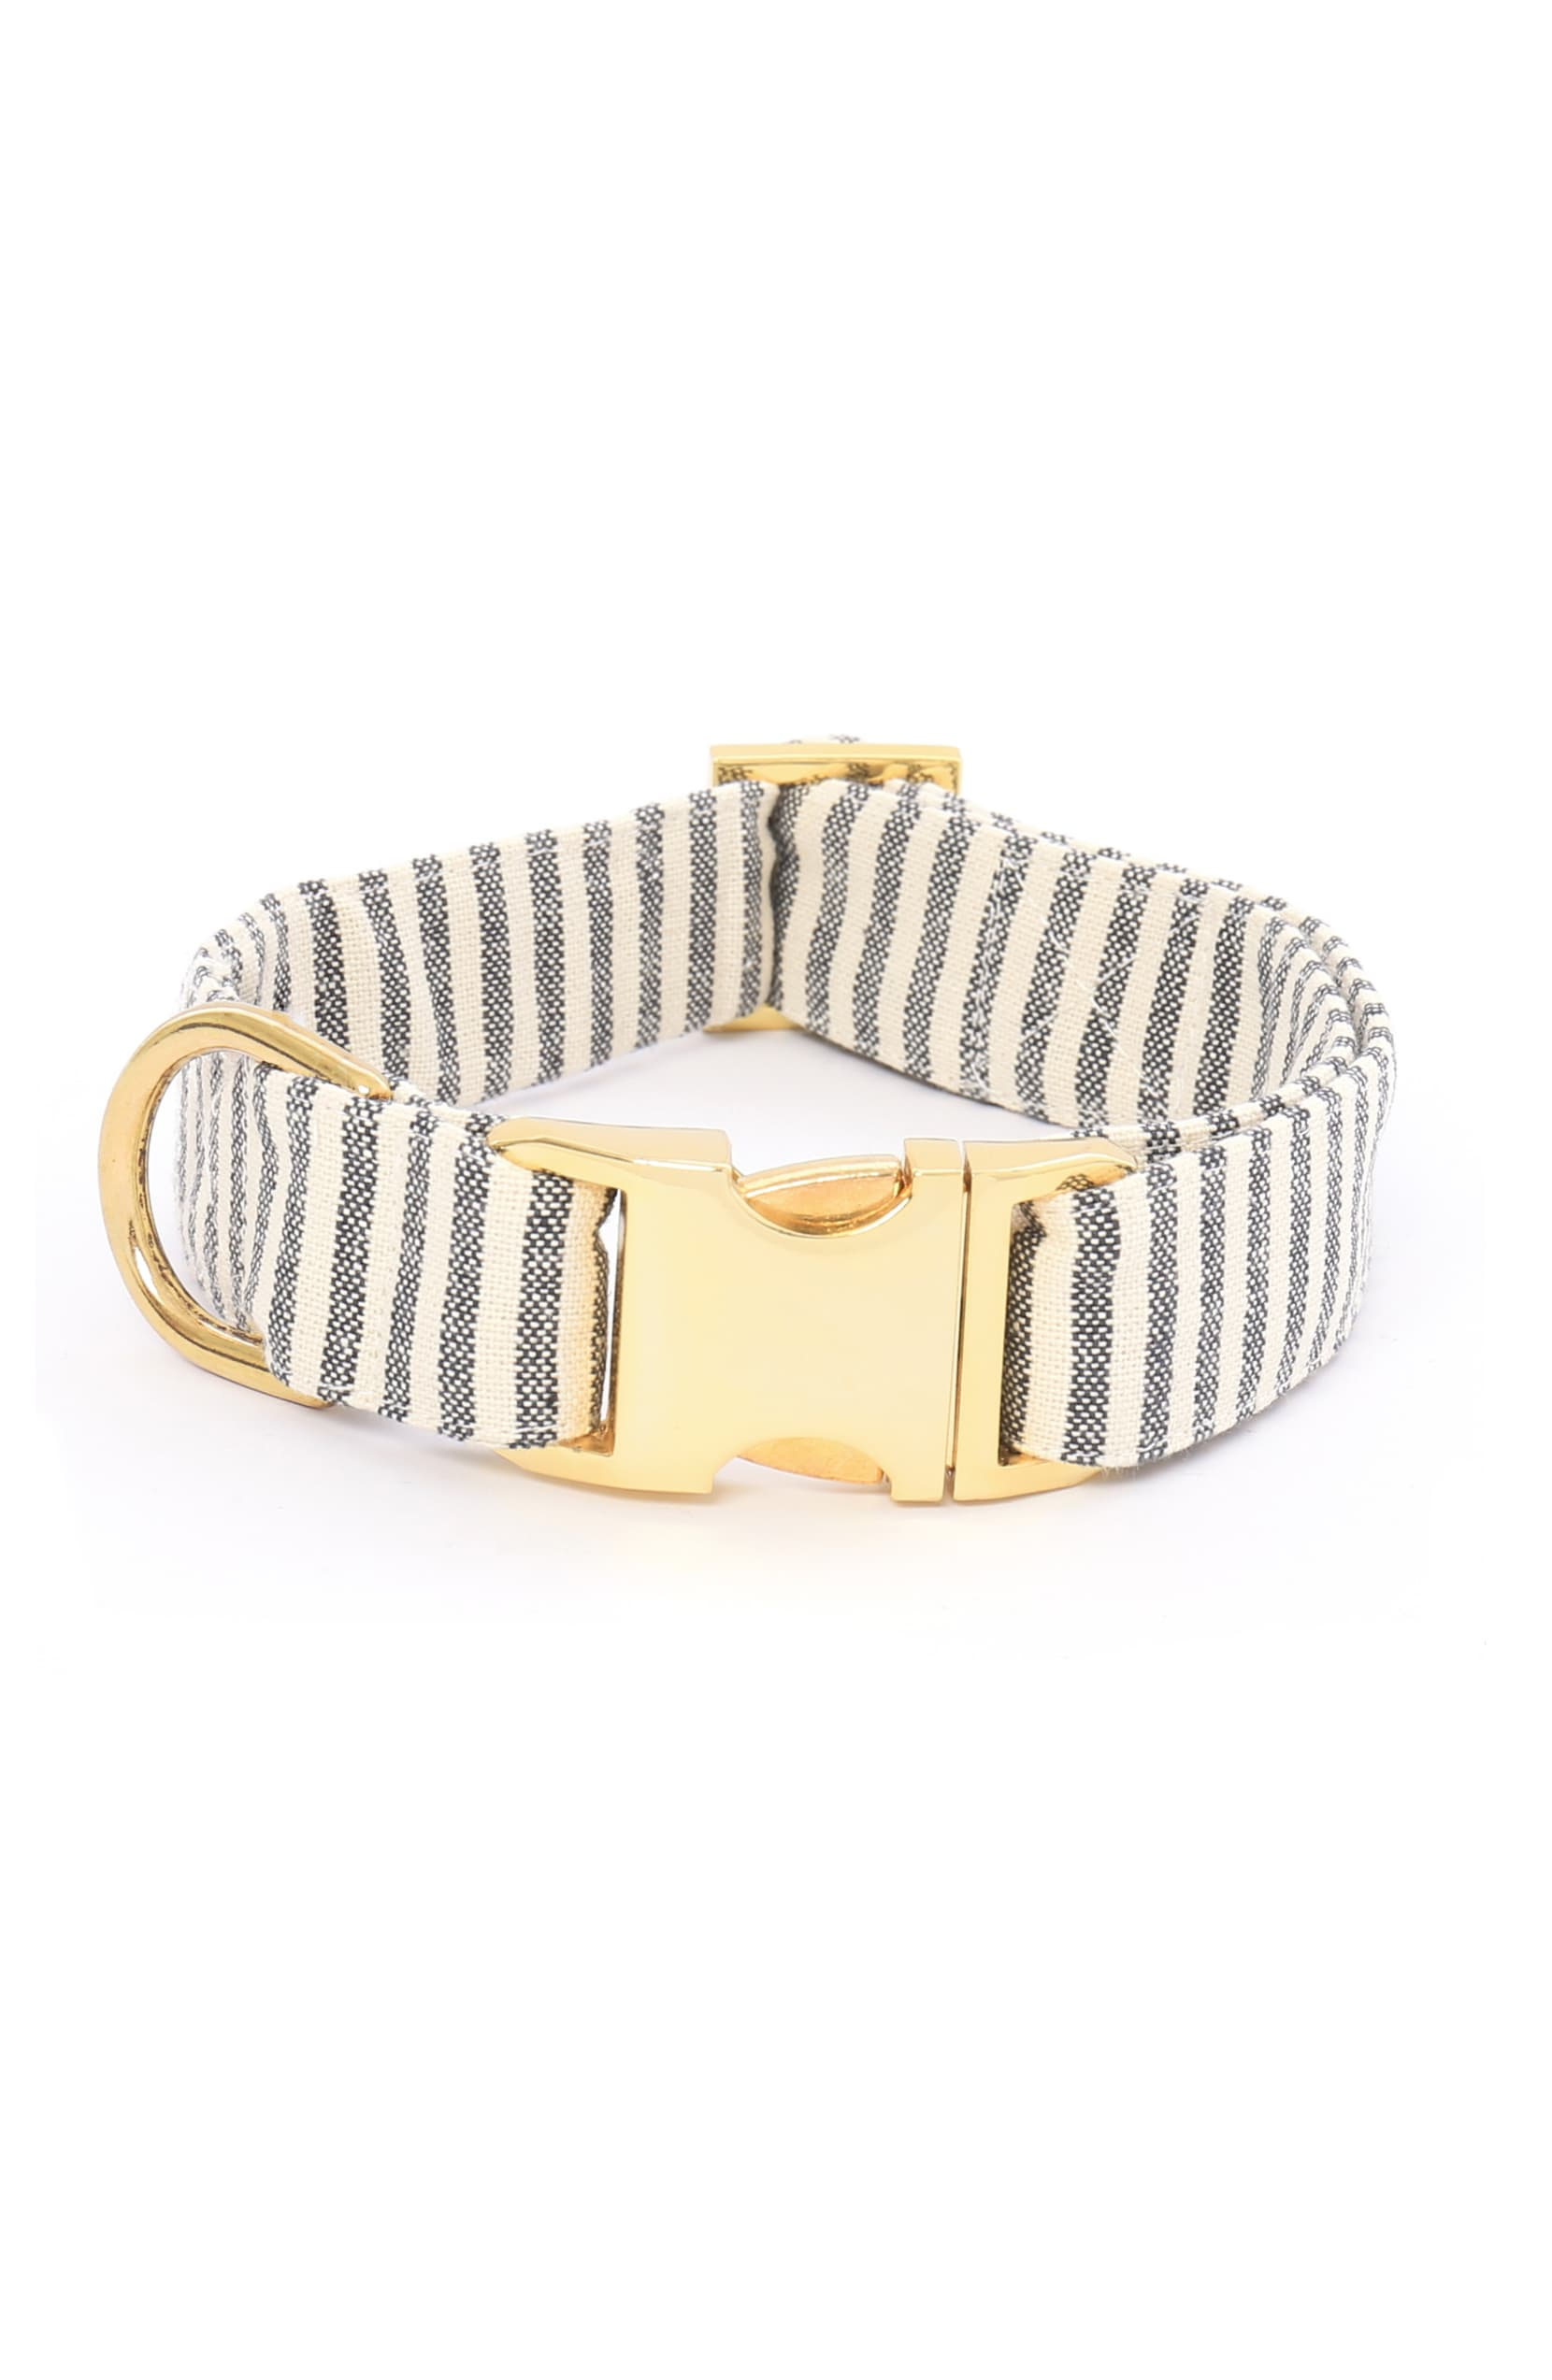 "<a  href=""https://shop.nordstrom.com/s/the-foggy-dog-charcoal-stripe-dog-collar/5380052?origin=keywordsearch-personalizedsort&breadcrumb=Home%2FAll%20Results&color=charcoal%2F%20gold"" target=""_blank"" title=""https://shop.nordstrom.com/s/the-foggy-dog-charcoal-stripe-dog-collar/5380052?origin=keywordsearch-personalizedsort&breadcrumb=Home%2FAll%20Results&color=charcoal%2F%20gold"">Charcoal Stripe Dog Collar by THE FOGGY DOG ($32.00)</a>{&nbsp;}Cut from durable striped cotton, with shining gold tone hardware and a rugged nylon core, this handmade dog collar is built to look great and last a long time. (Image: Nordstrom)"